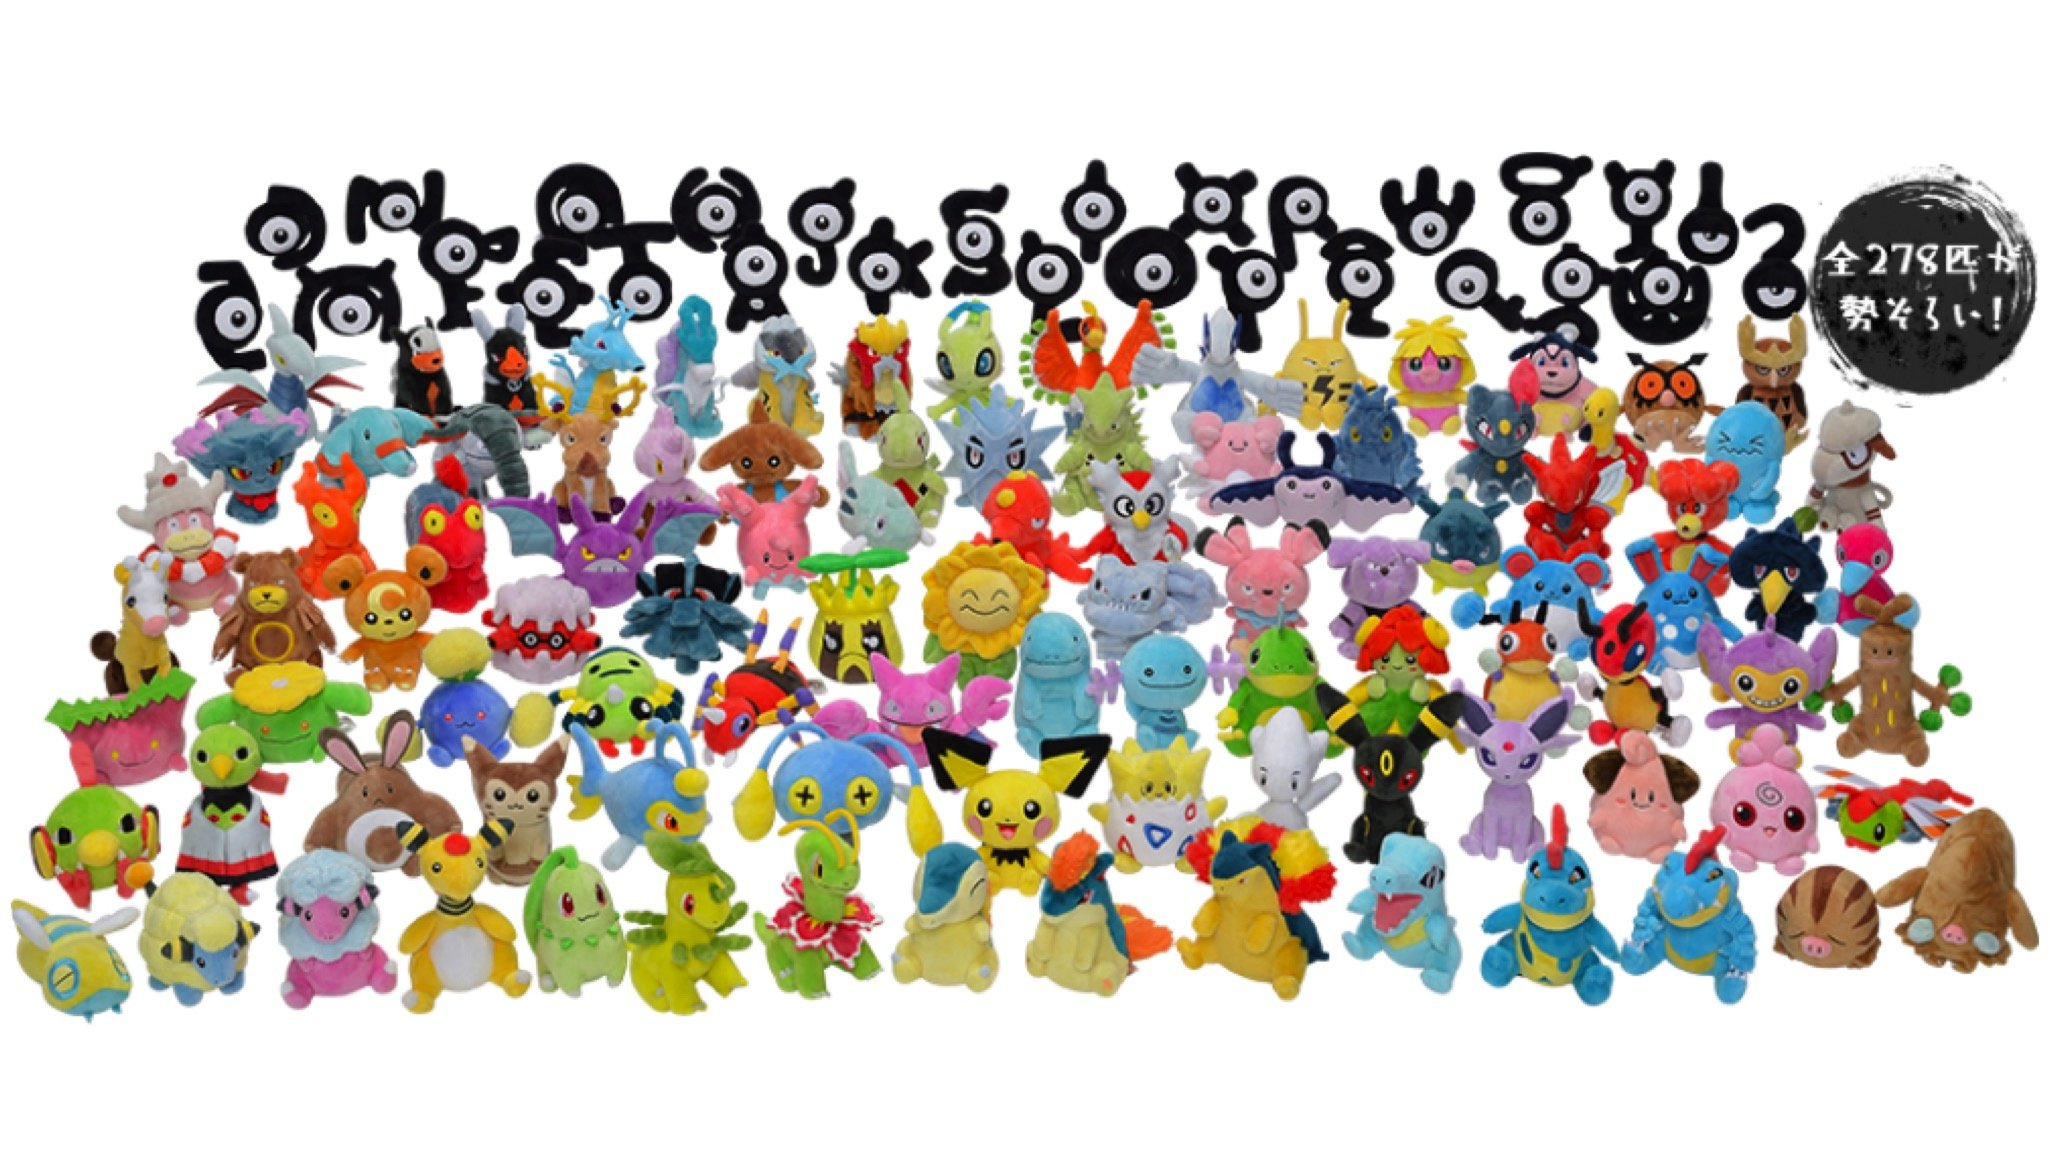 Every Single Johto Pokémon Is Being Released In Adorable Plush Form